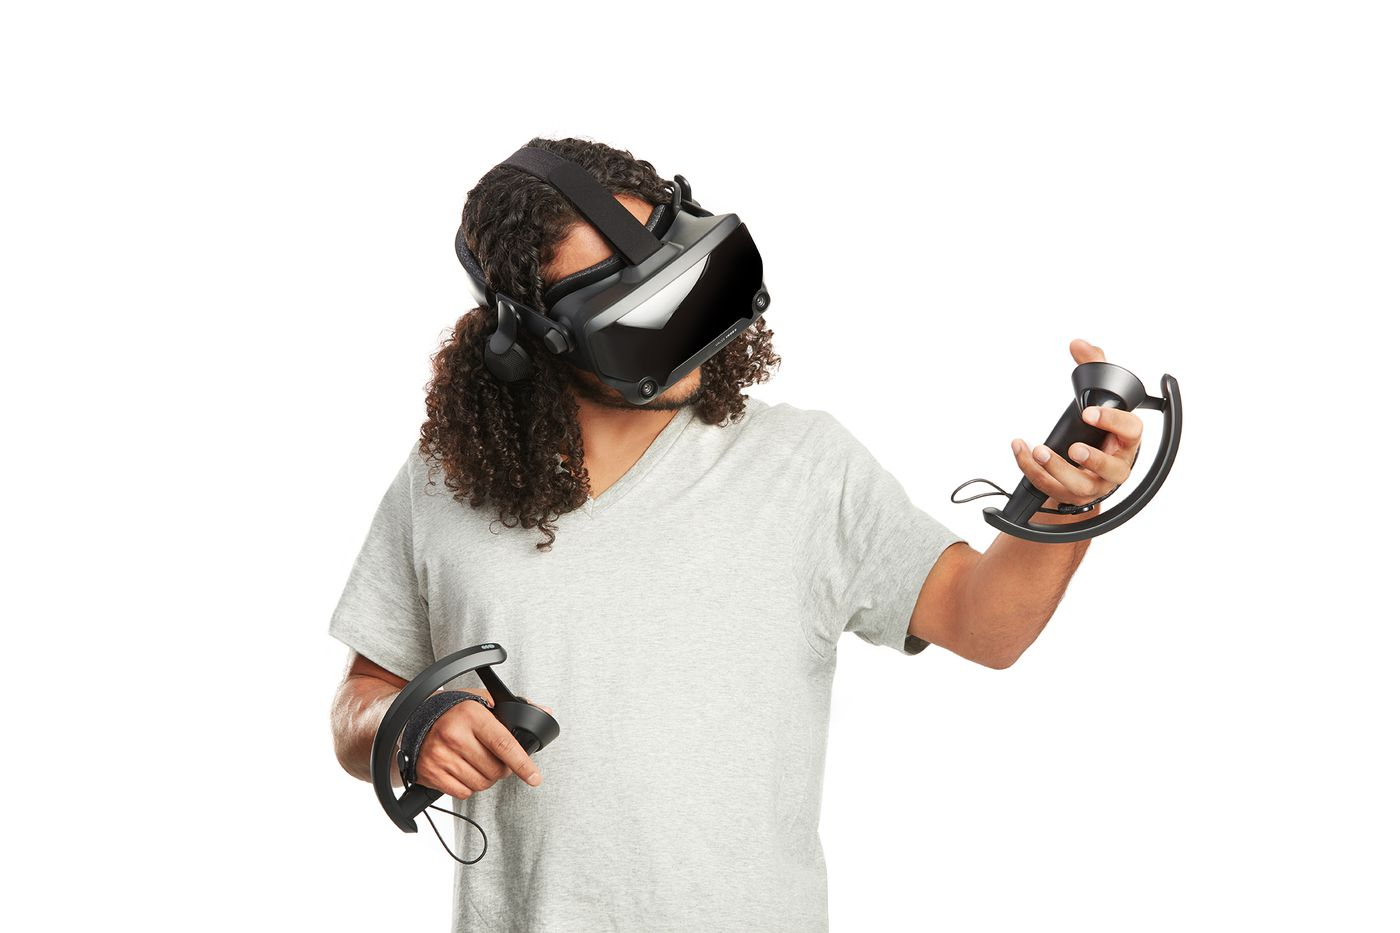 Valve's Index is the next generation of high-end virtual